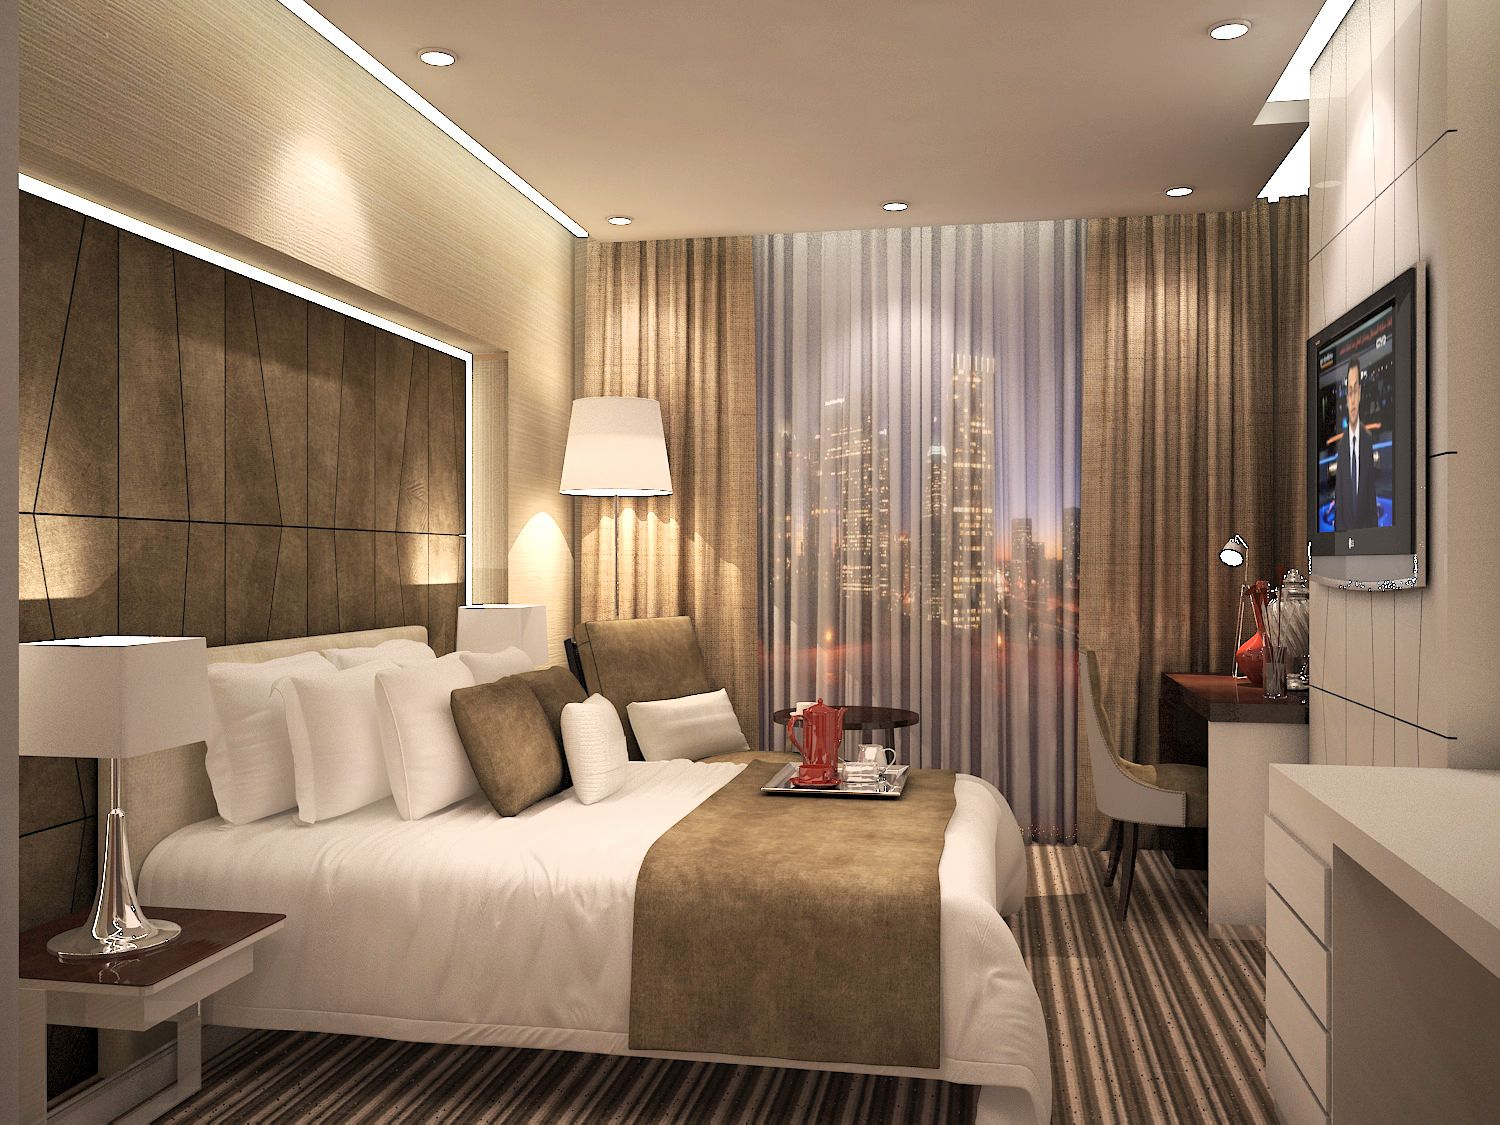 5 Star Hotel Bedroom Interior Design